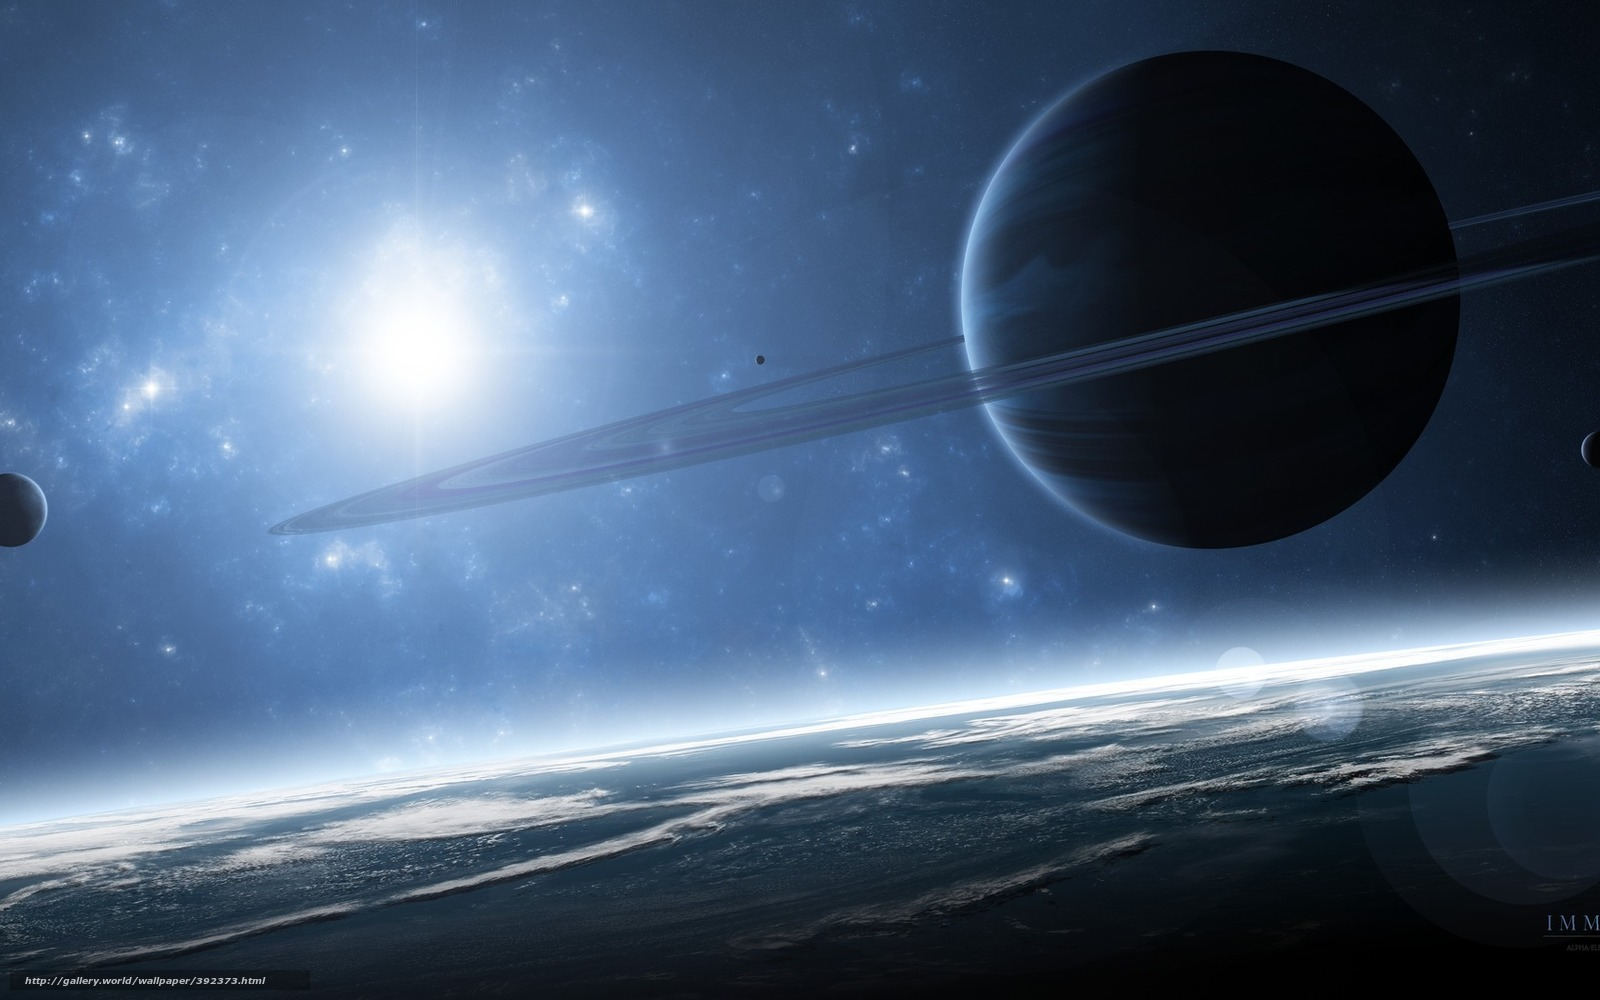 wallpapers of giant planets - photo #1